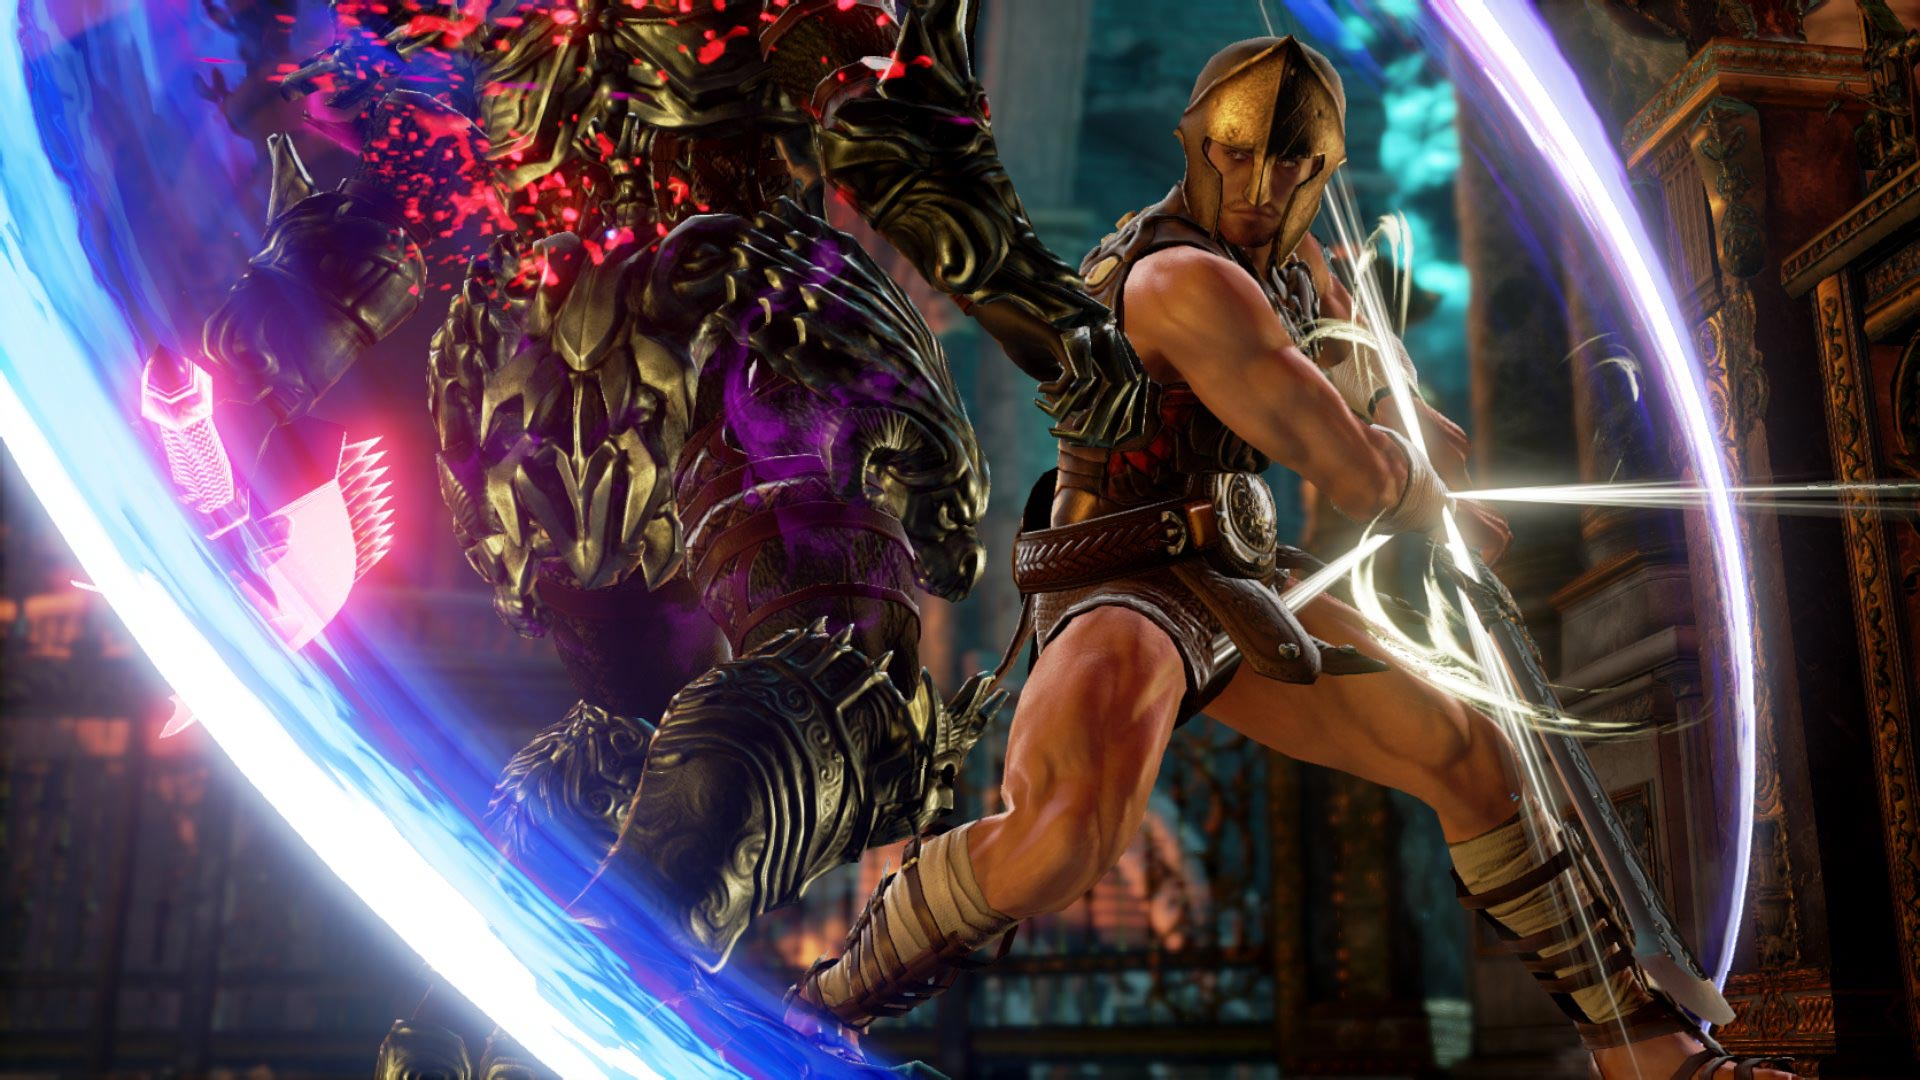 Soul Calibur new costume parts 7 out of 7 image gallery